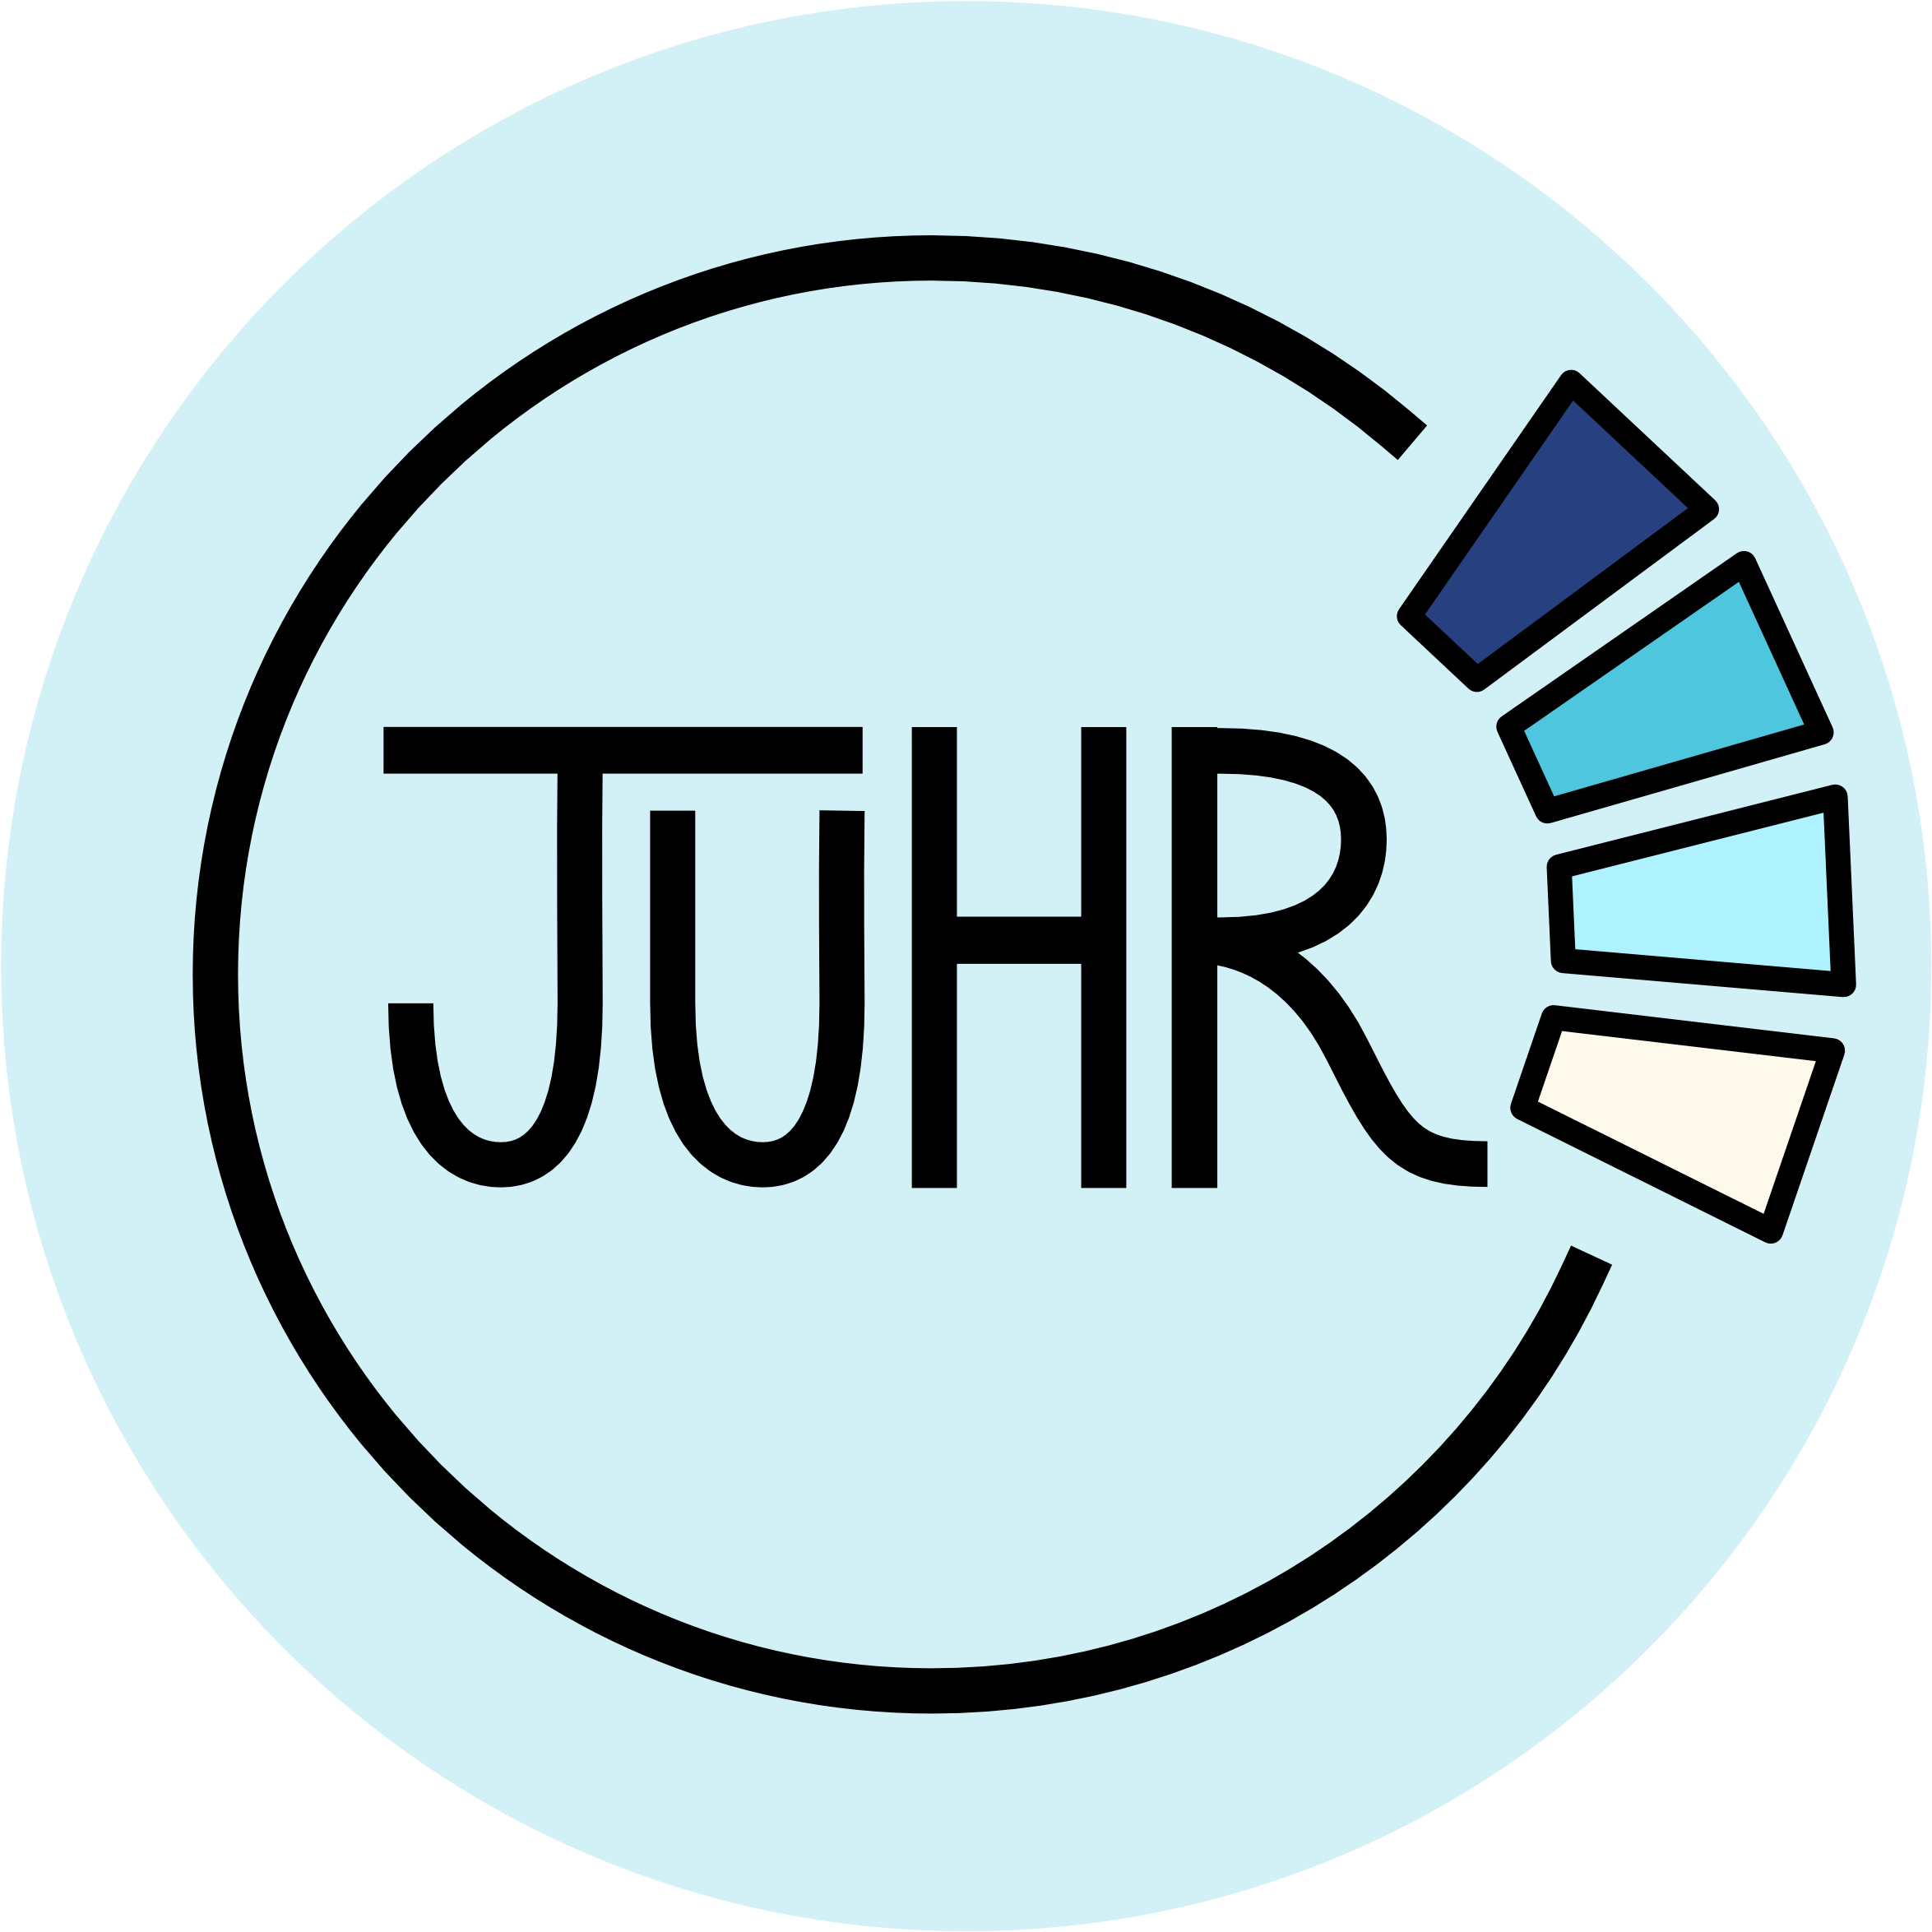 Logo: The letters JUHR in a circle with four bands of colour, in different shades of blue.